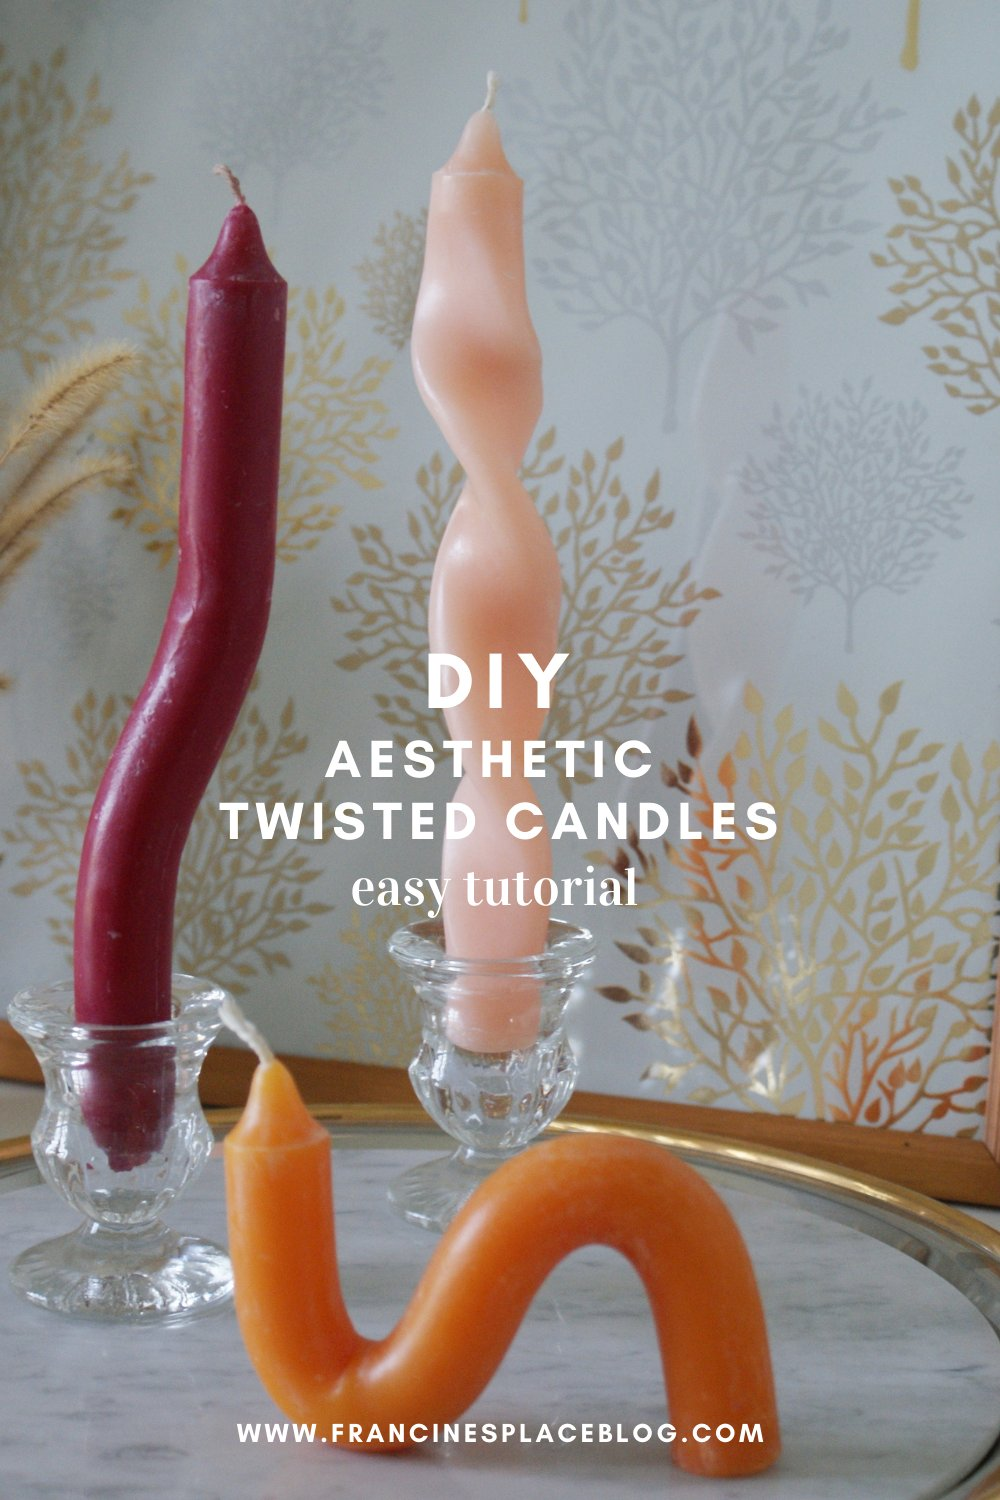 diy aesthetic twisted candles how make home decoration decorate fell idea craft easy tutorial sculpture francinesplaceblog pinterest